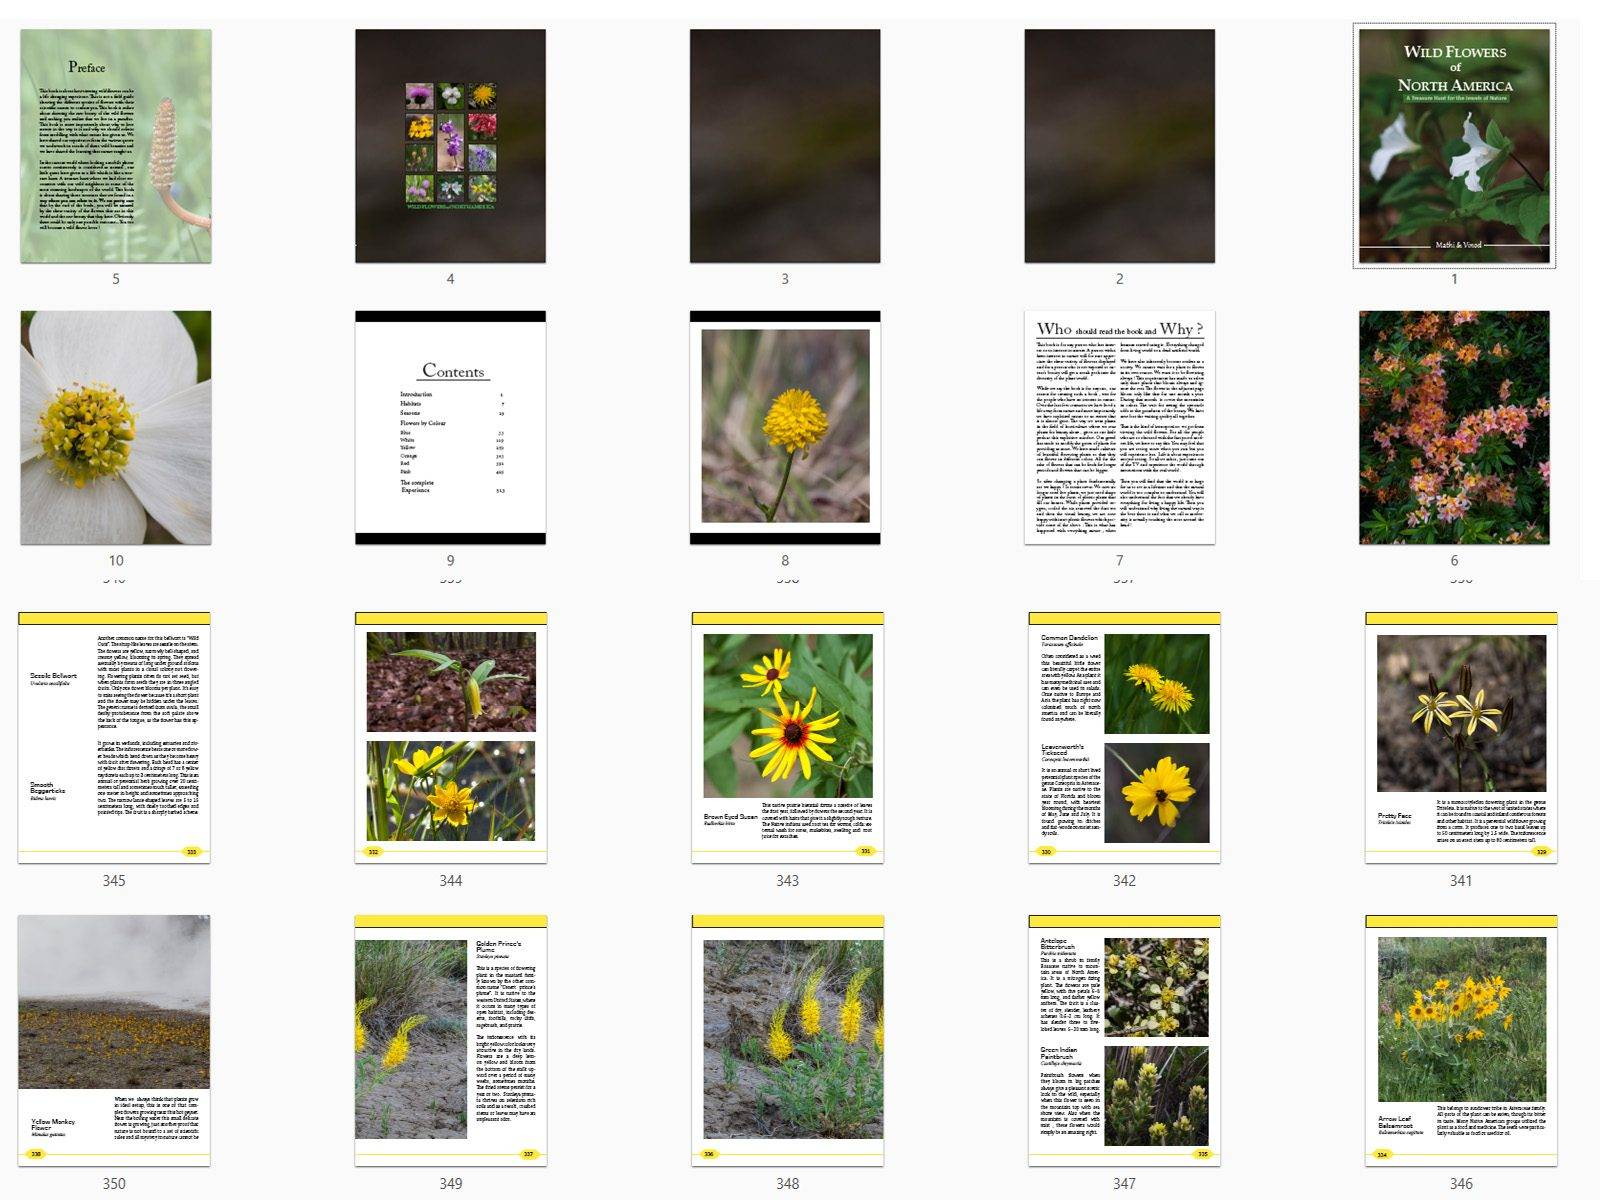 Wildflowers of north america, book pages , vinod, Mathi